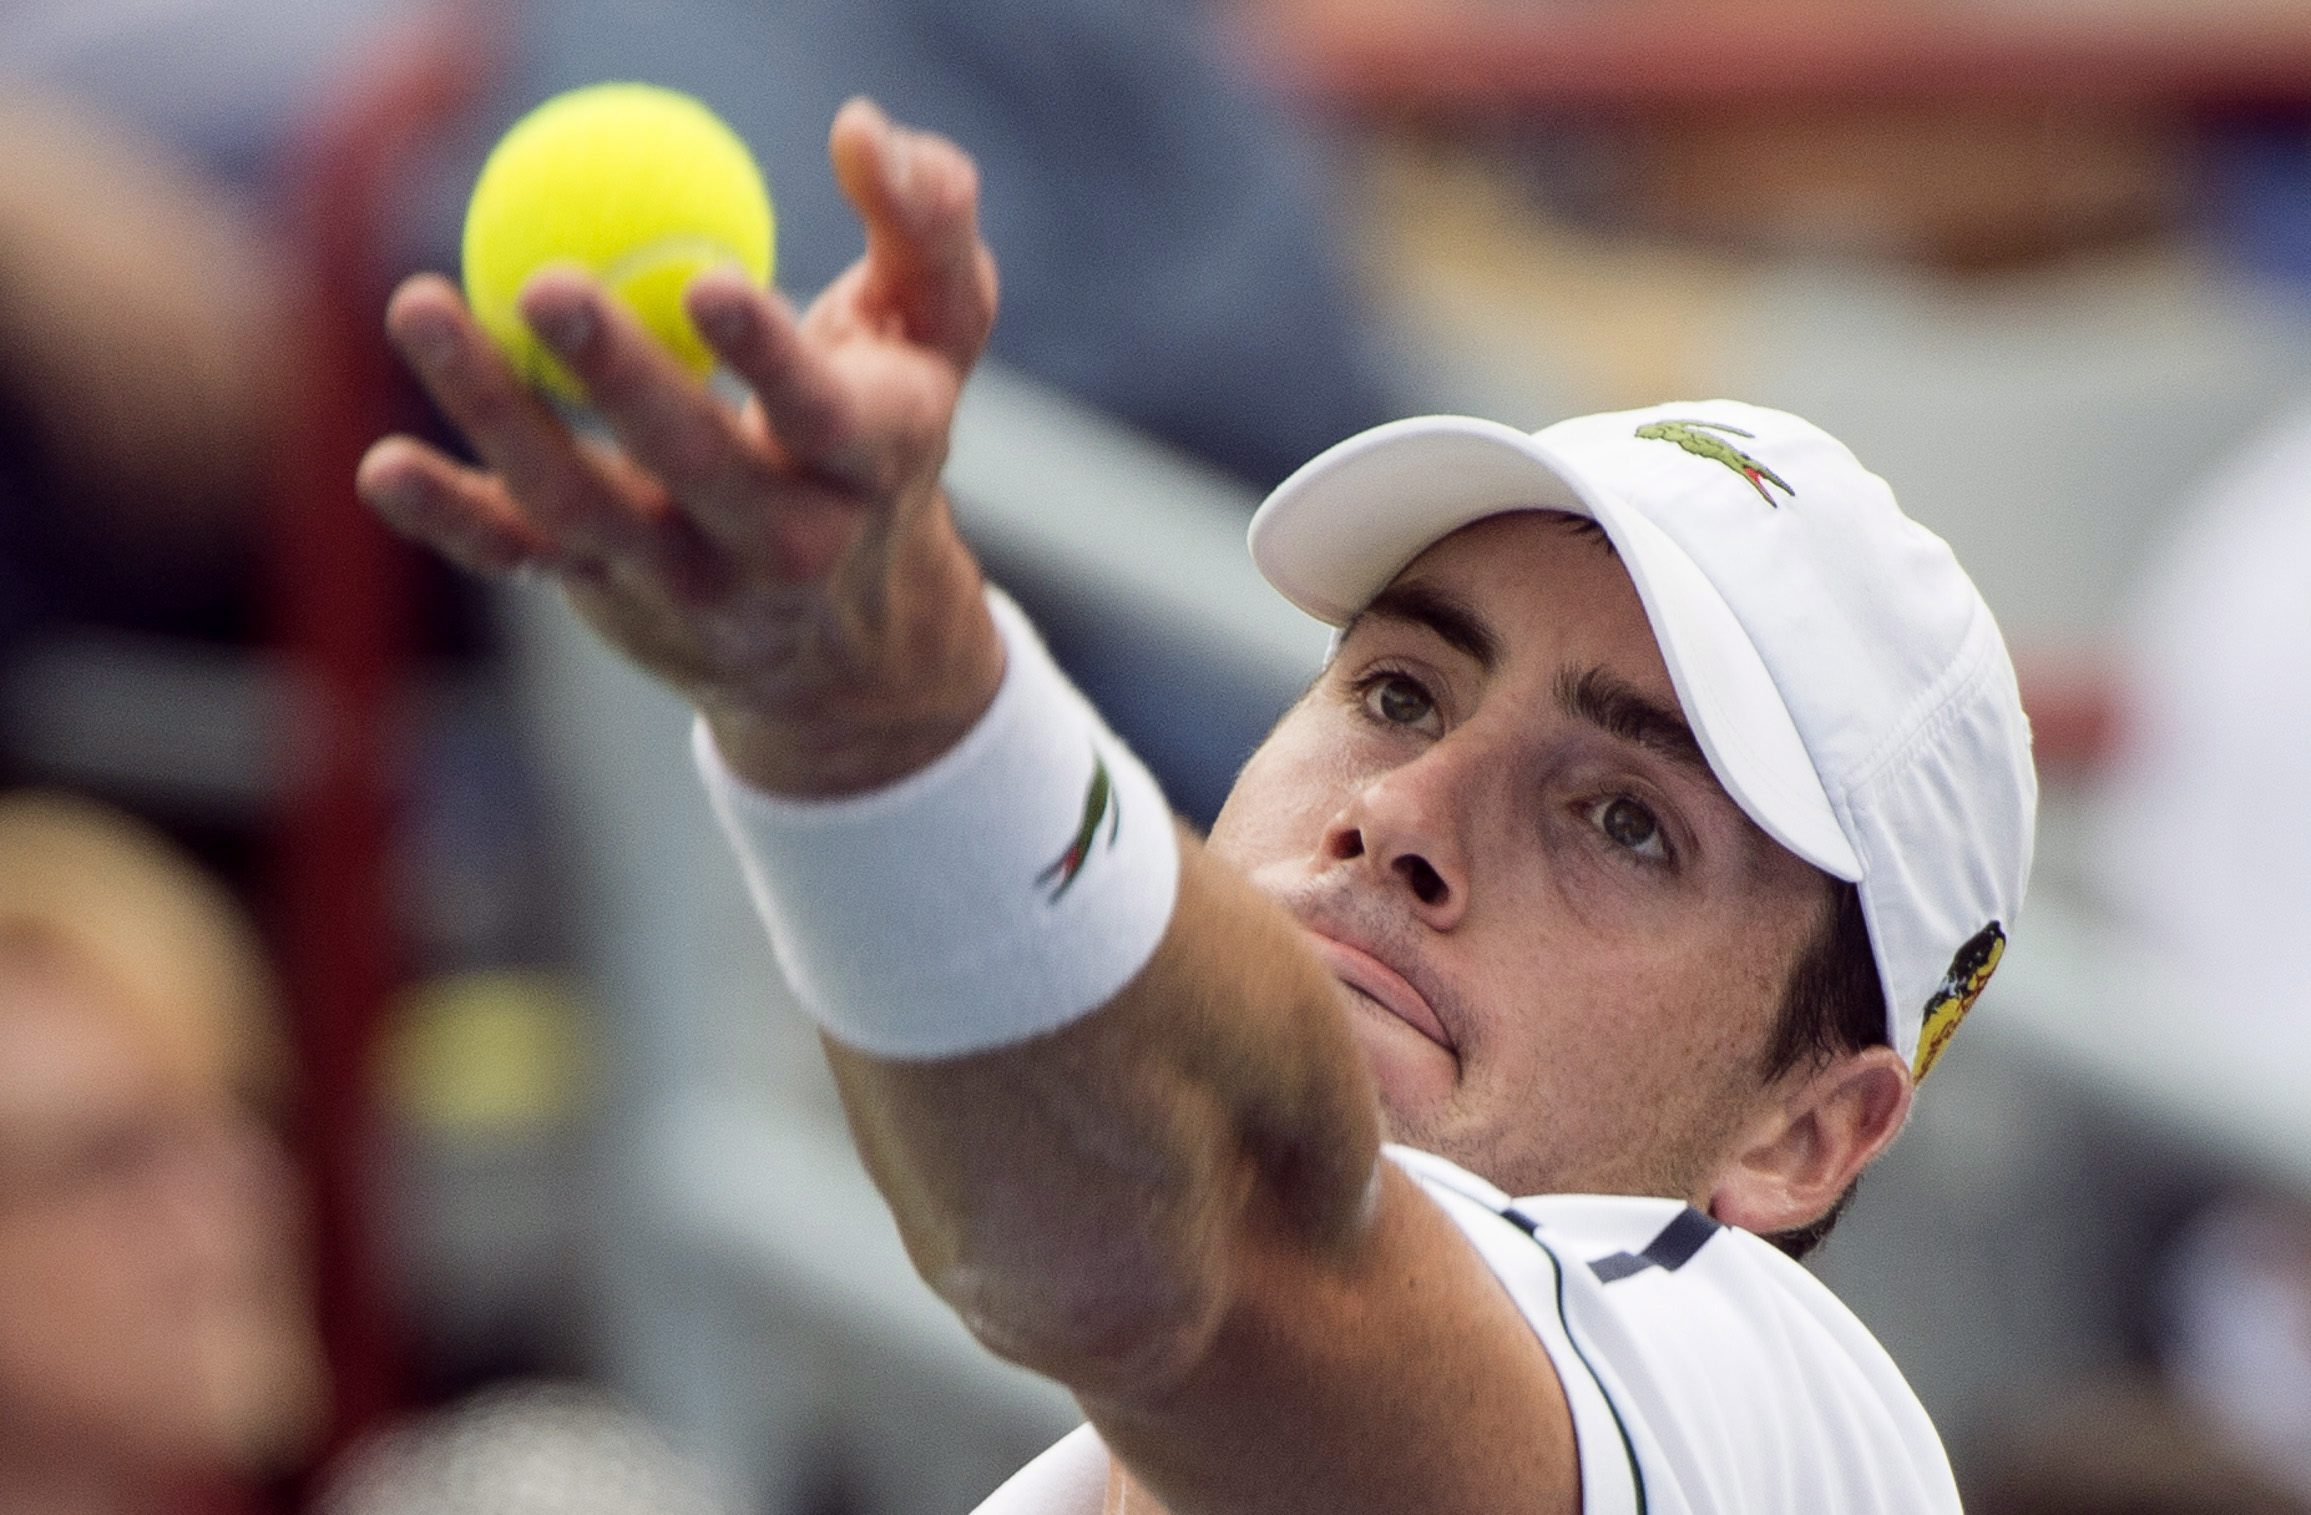 John Isner, of the United States, tosses the ball to serve to Jeremy Chardy, of France, during the quarter-finals at the Rogers Cup tennis tournament Friday Aug. 14, 2015 in Montreal. (Paul Chiasson/The Canadian Press via AP) MANDATORY CREDIT